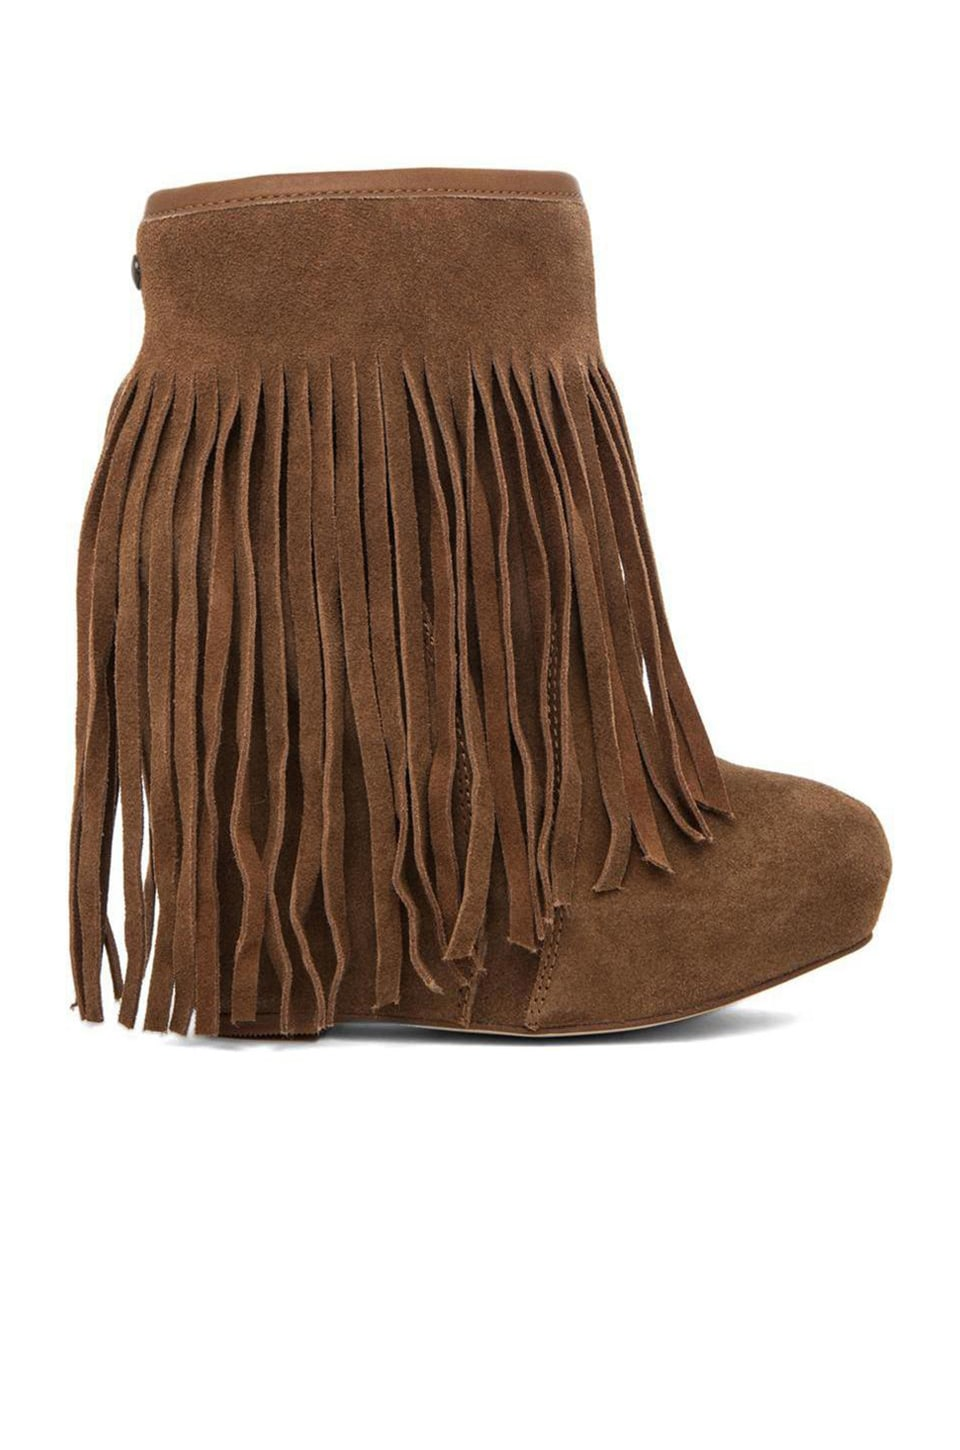 0fd3bb10579 Koolaburra Veleta Fringe Wedge Boot in Chestnut from Revolve.com